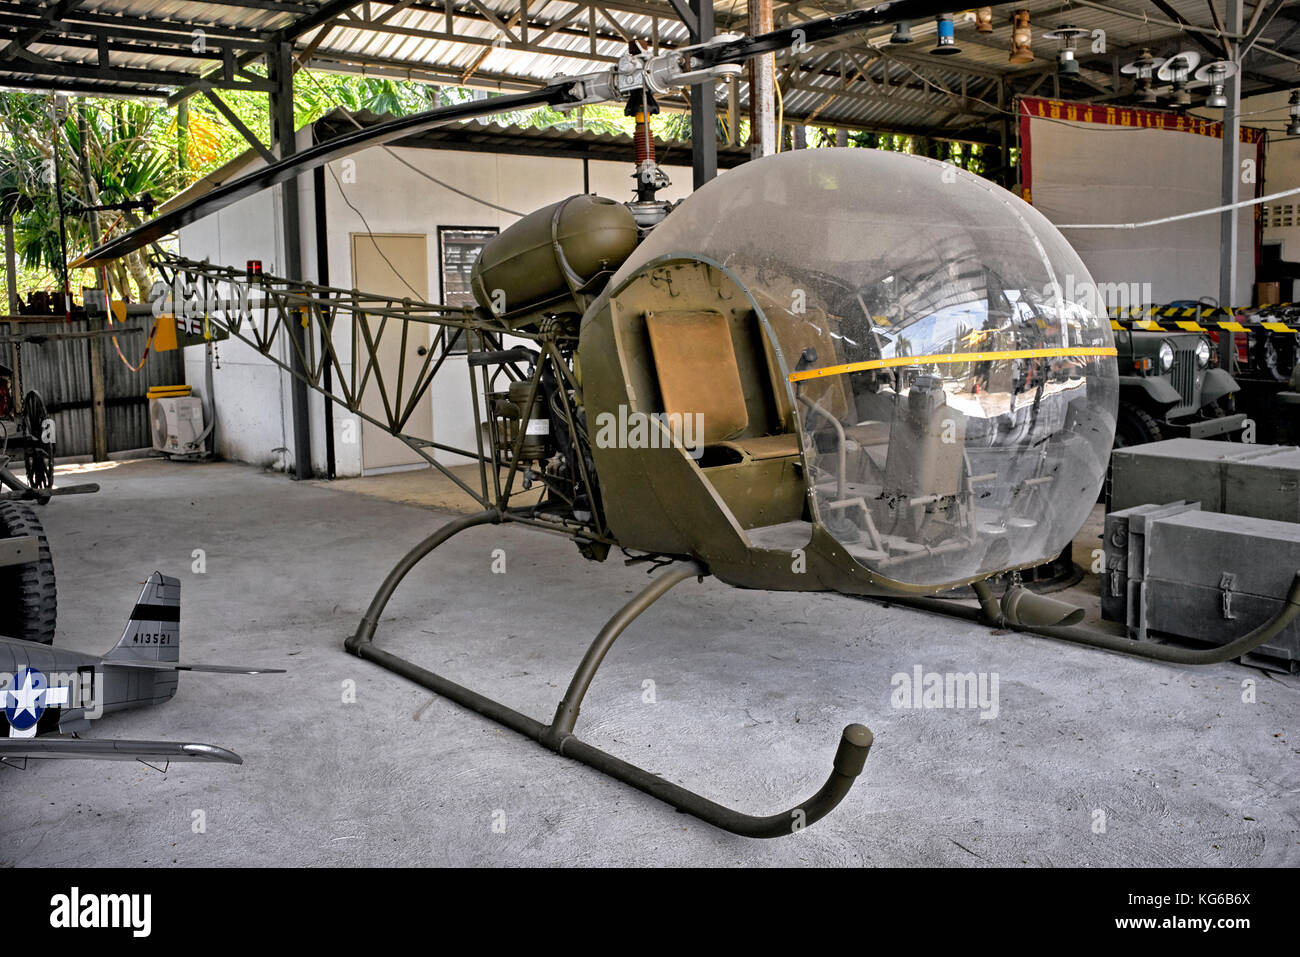 Vintage Military Helicopter, USA, Mobile Army Surgical Hospital (MASH), Korean war, Sioux OH-13 - Stock Image